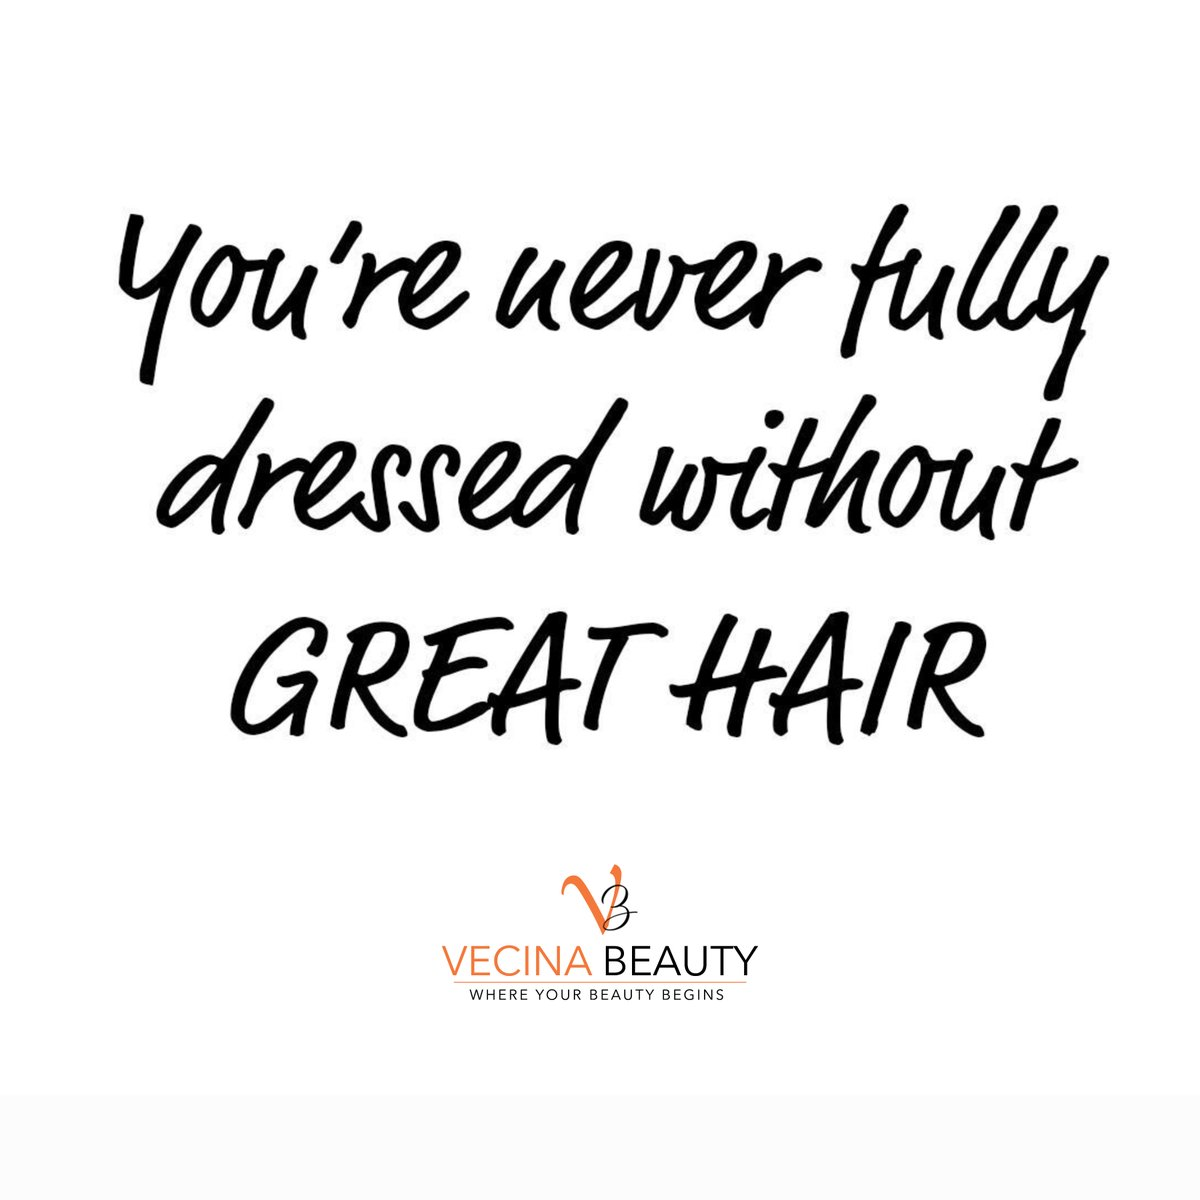 Rise and shine! ------------ .  #vecinabeauty #whereyourbeautybegins #hairdresser #beautysalon #hairsalon  #hair #haircare #salon  #hairs #hairart #hairstylist #hairdoer #hairequipment #beauty  #motivation #quoteoftheday #quotes #inspiration #love #instagoodpic.twitter.com/RCa5IntB3W